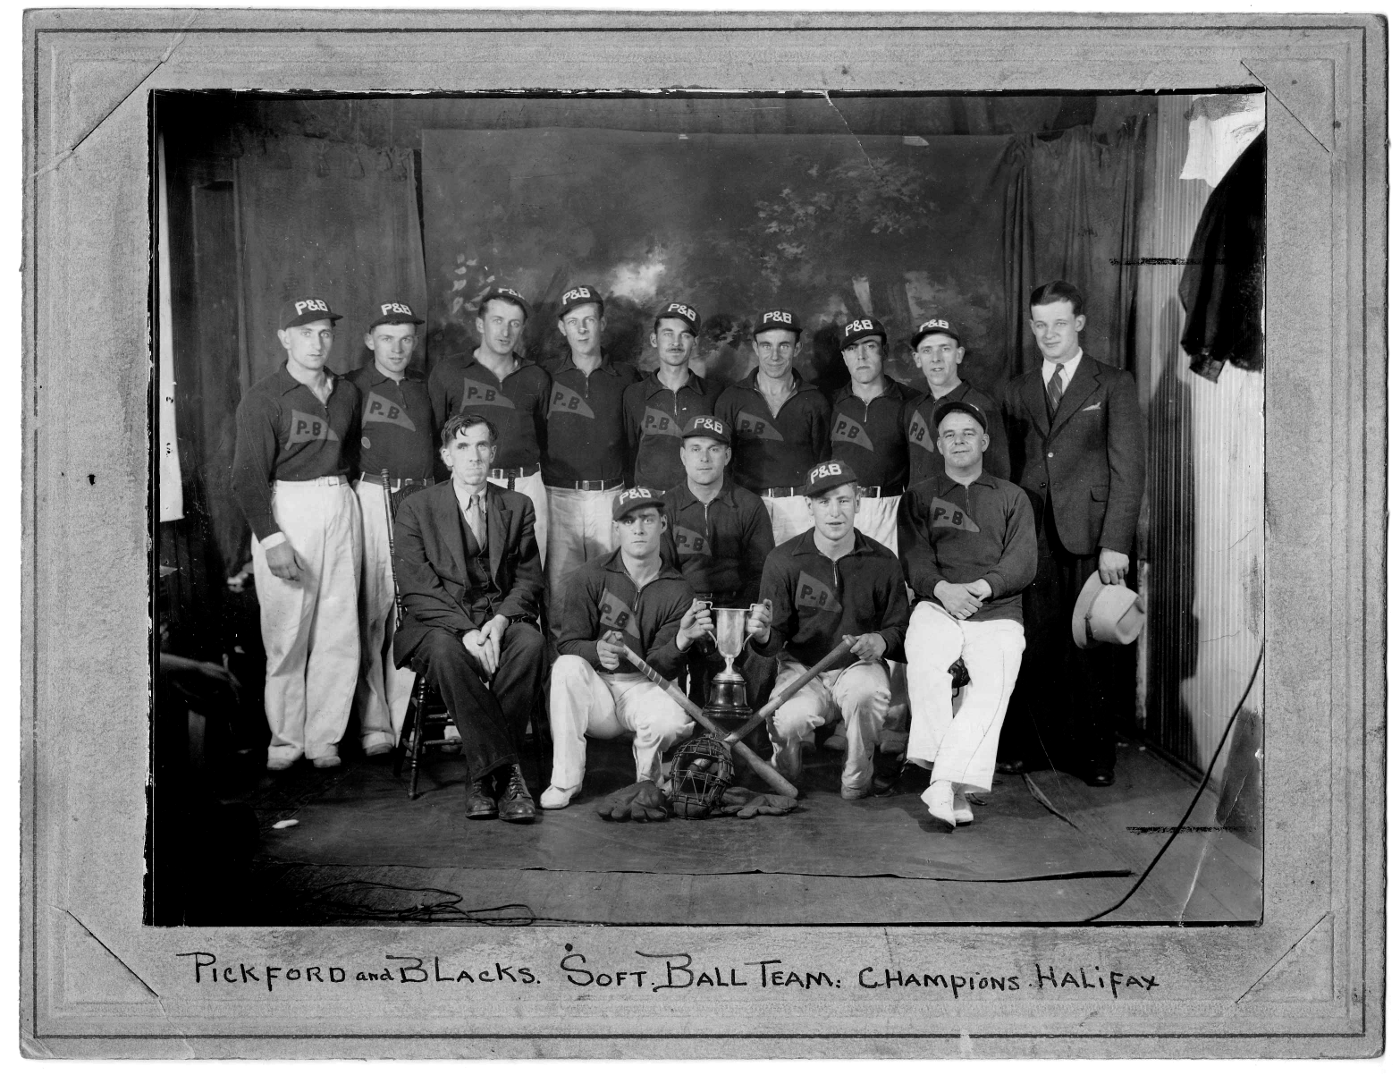 Halifax softball champs, the Pickford and Blacks, throwing shadein the 1920s